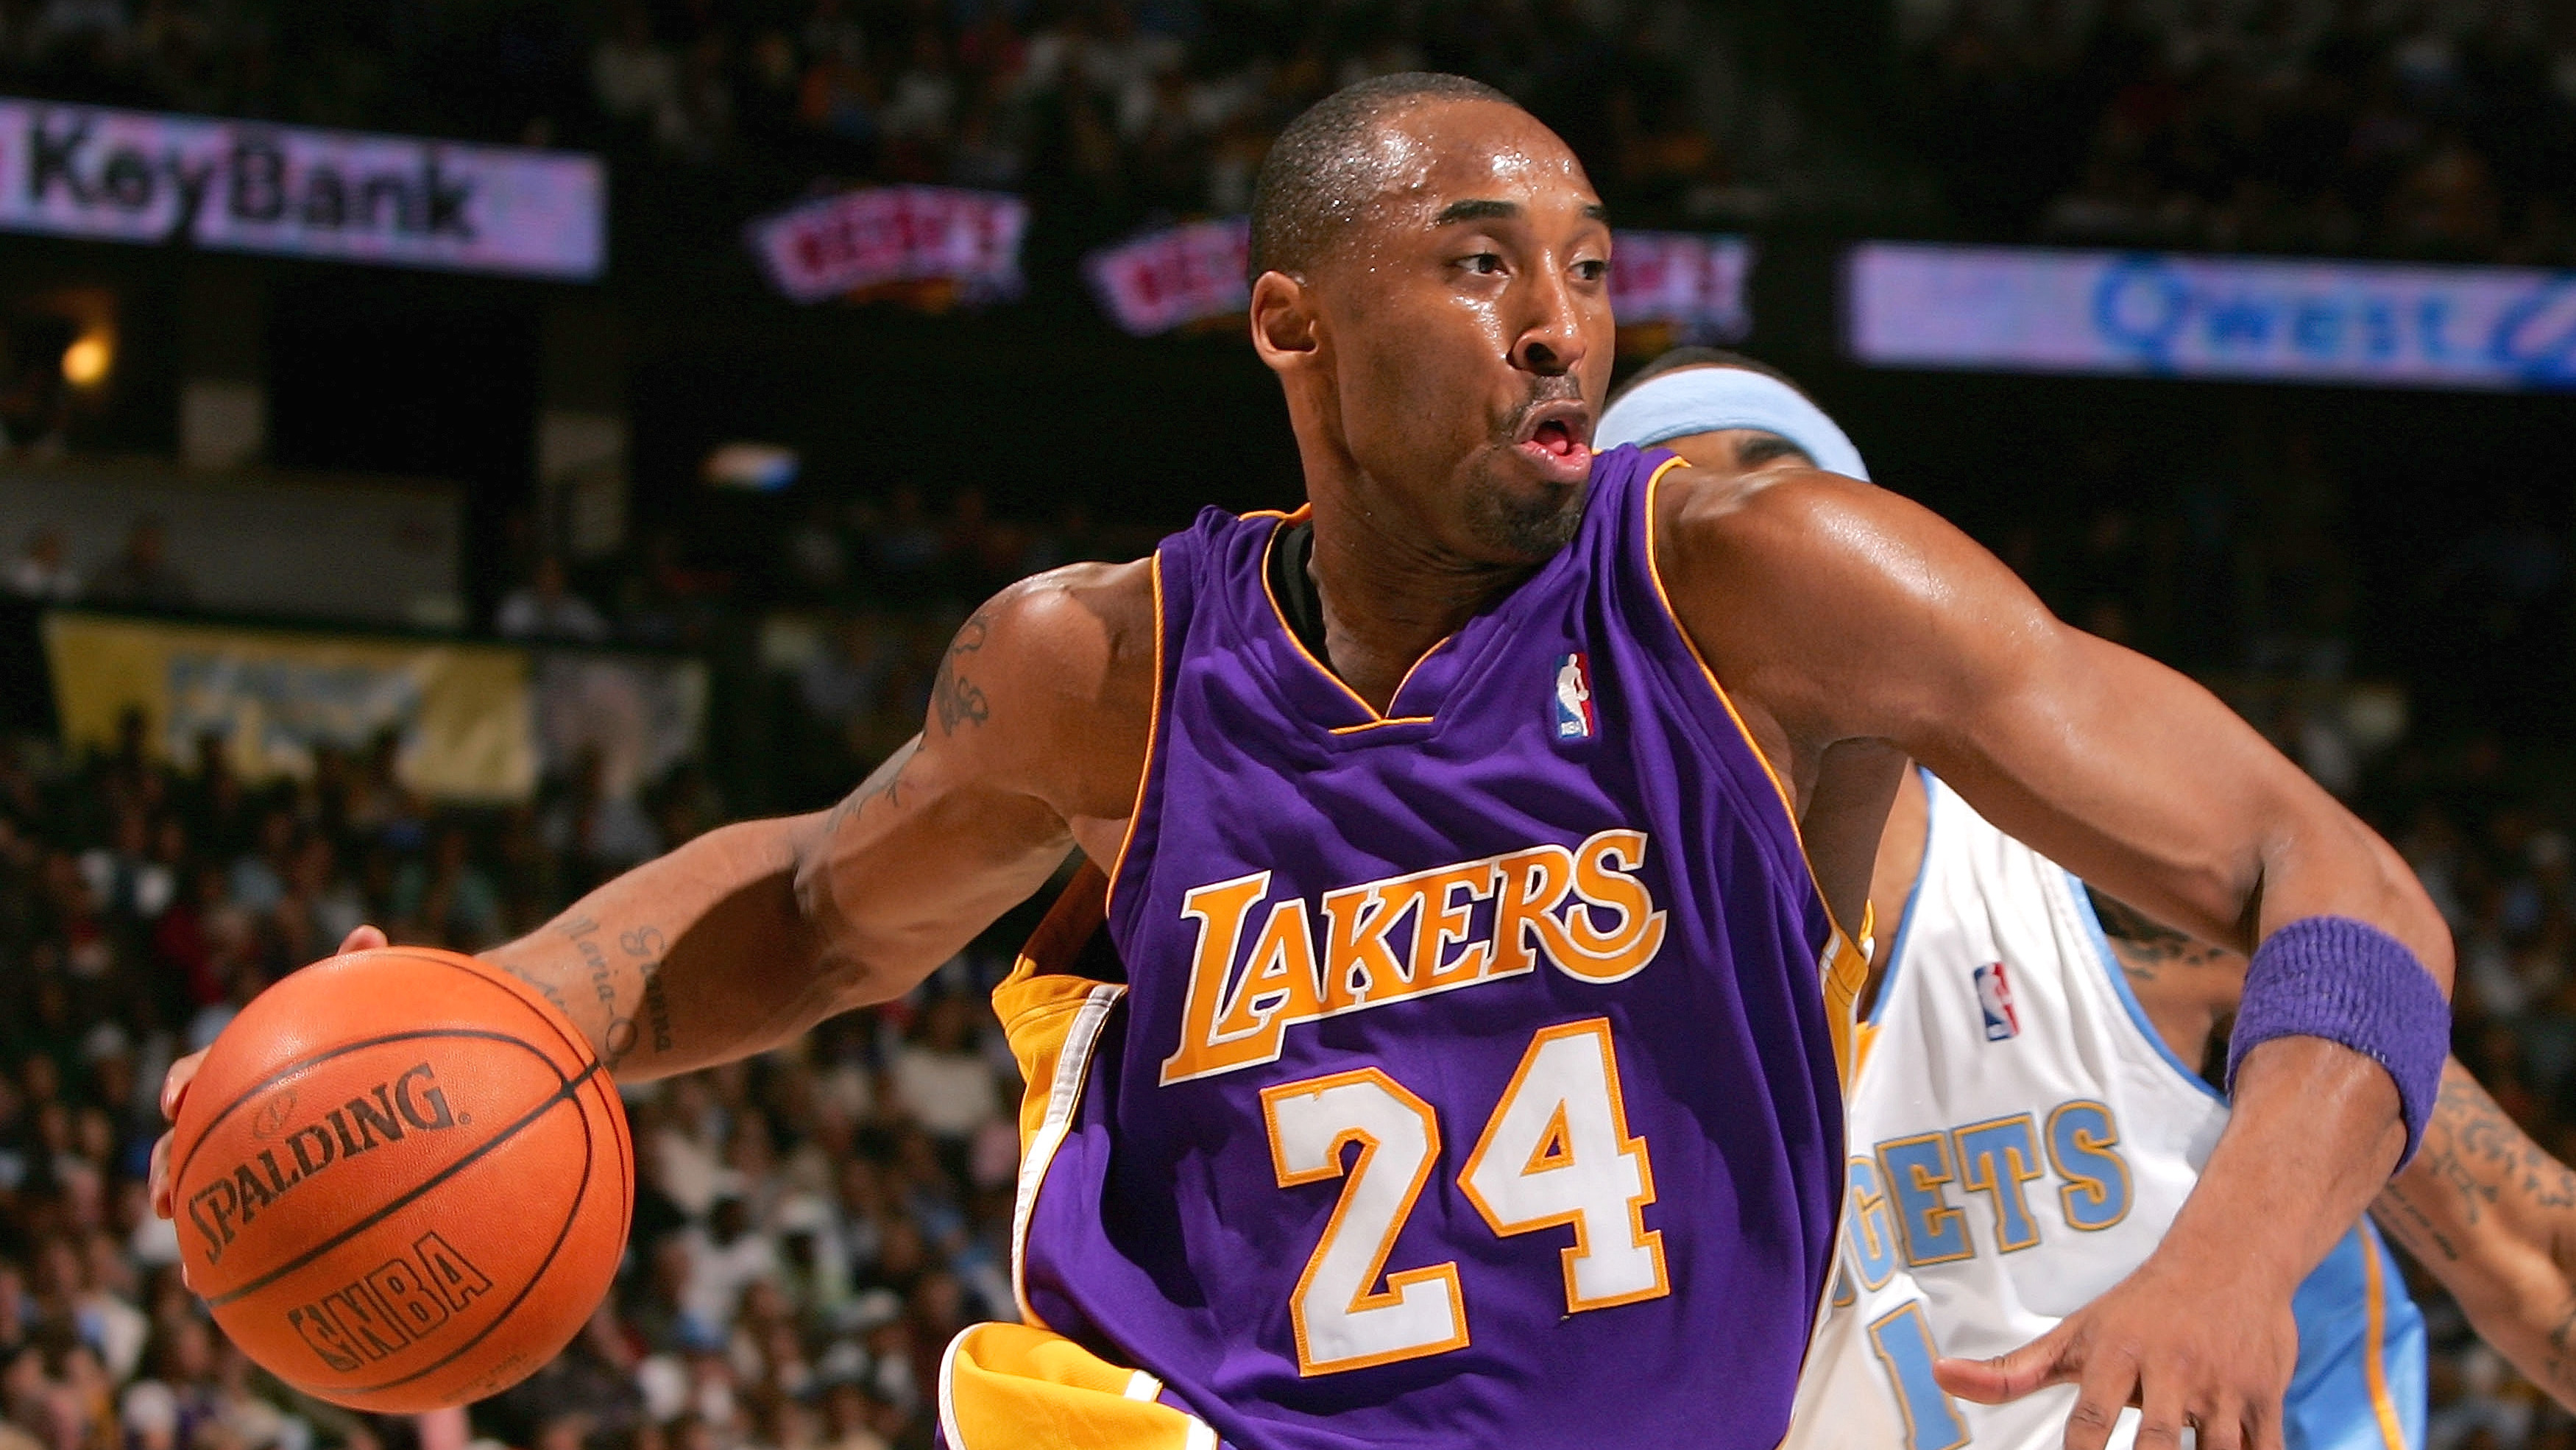 Petition To Change Nba Logo To Feature Late Kobe Bryant Gets